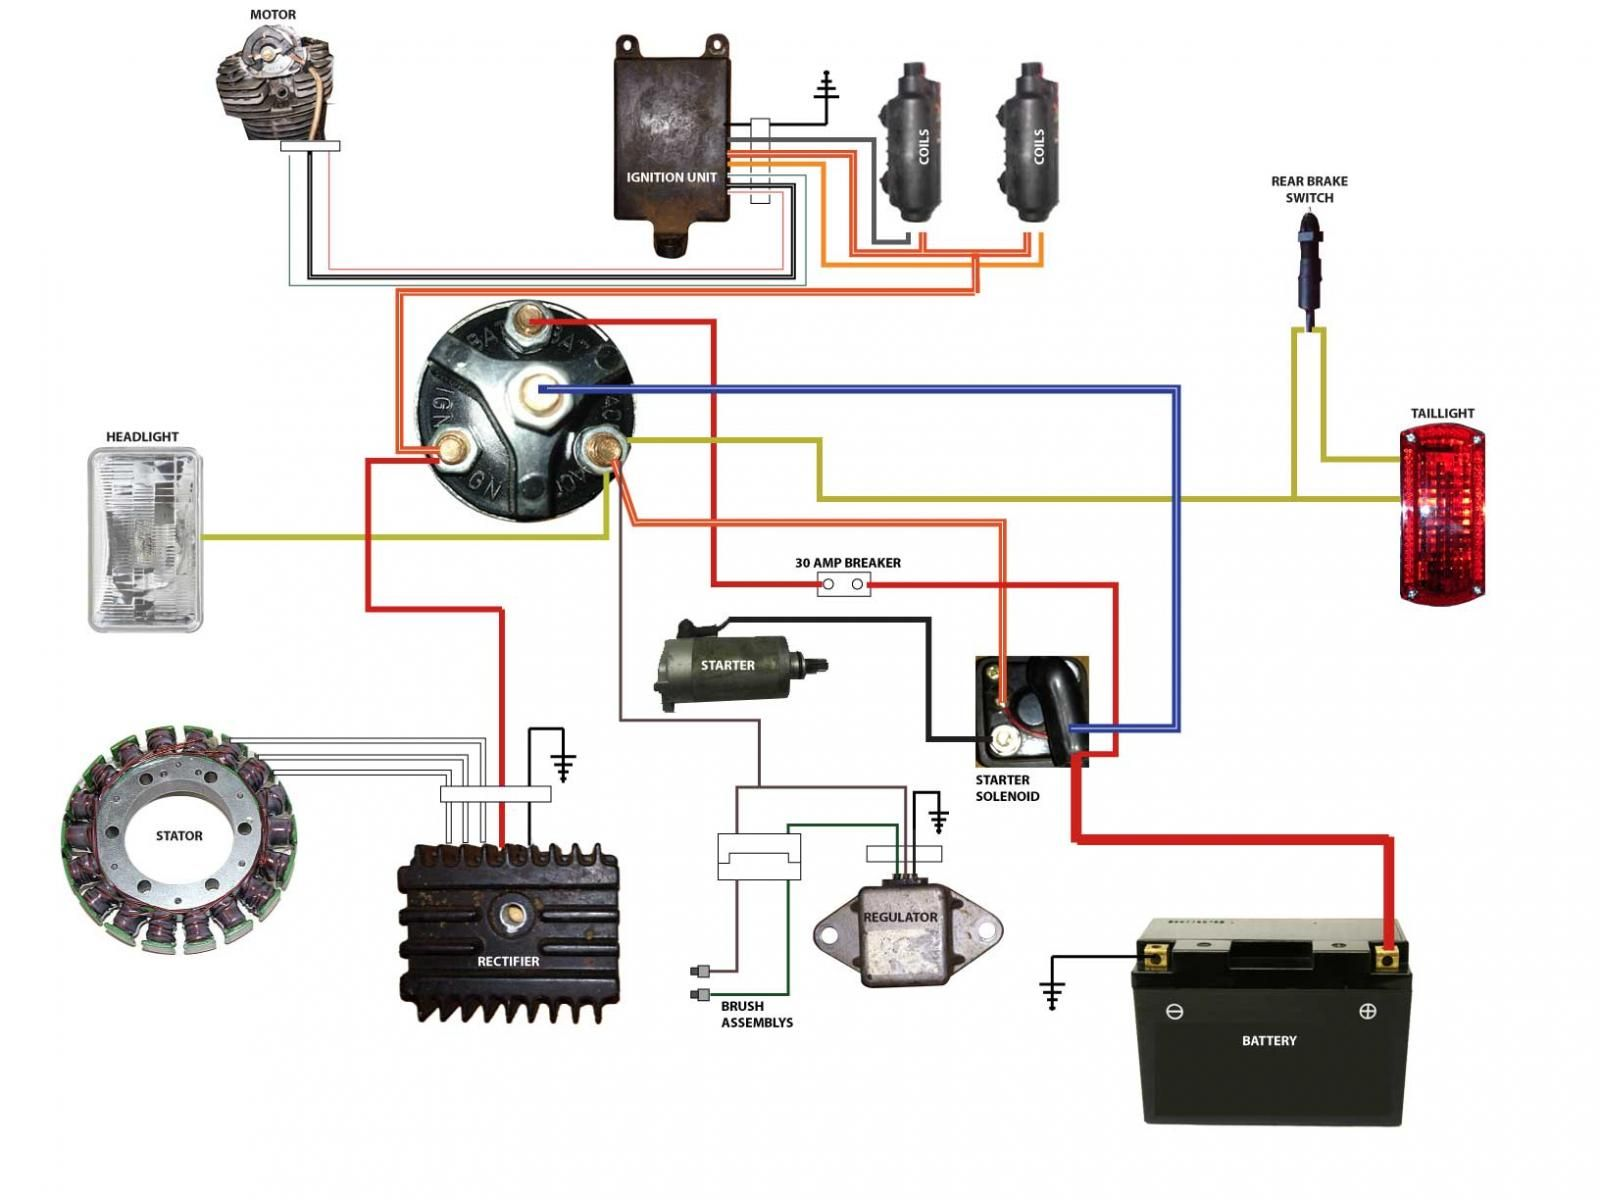 17 best Motorcycle wiring diagrams images on Pinterest ... Iron Harley Wiring Diagram For Dummies on harley dyna frame diagram, harley ignition wiring, harley starter wiring diagram, harley sportster wiring diagram, harley electrical system, harley ignition switch replacement, harley tbw wiring diagram, harley wiring harness diagram, harley heated grips wiring diagram, harley turn signal wiring diagram, harley wiring schematics, harley wiring diagram simplified, harley wiring diagram wires, harley handlebar wiring diagram, harley speedometer wiring diagram, harley coil wiring, harley softail wiring diagram, harley wiring diagrams pdf, harley chopper wiring diagram, harley wiring diagrams online,